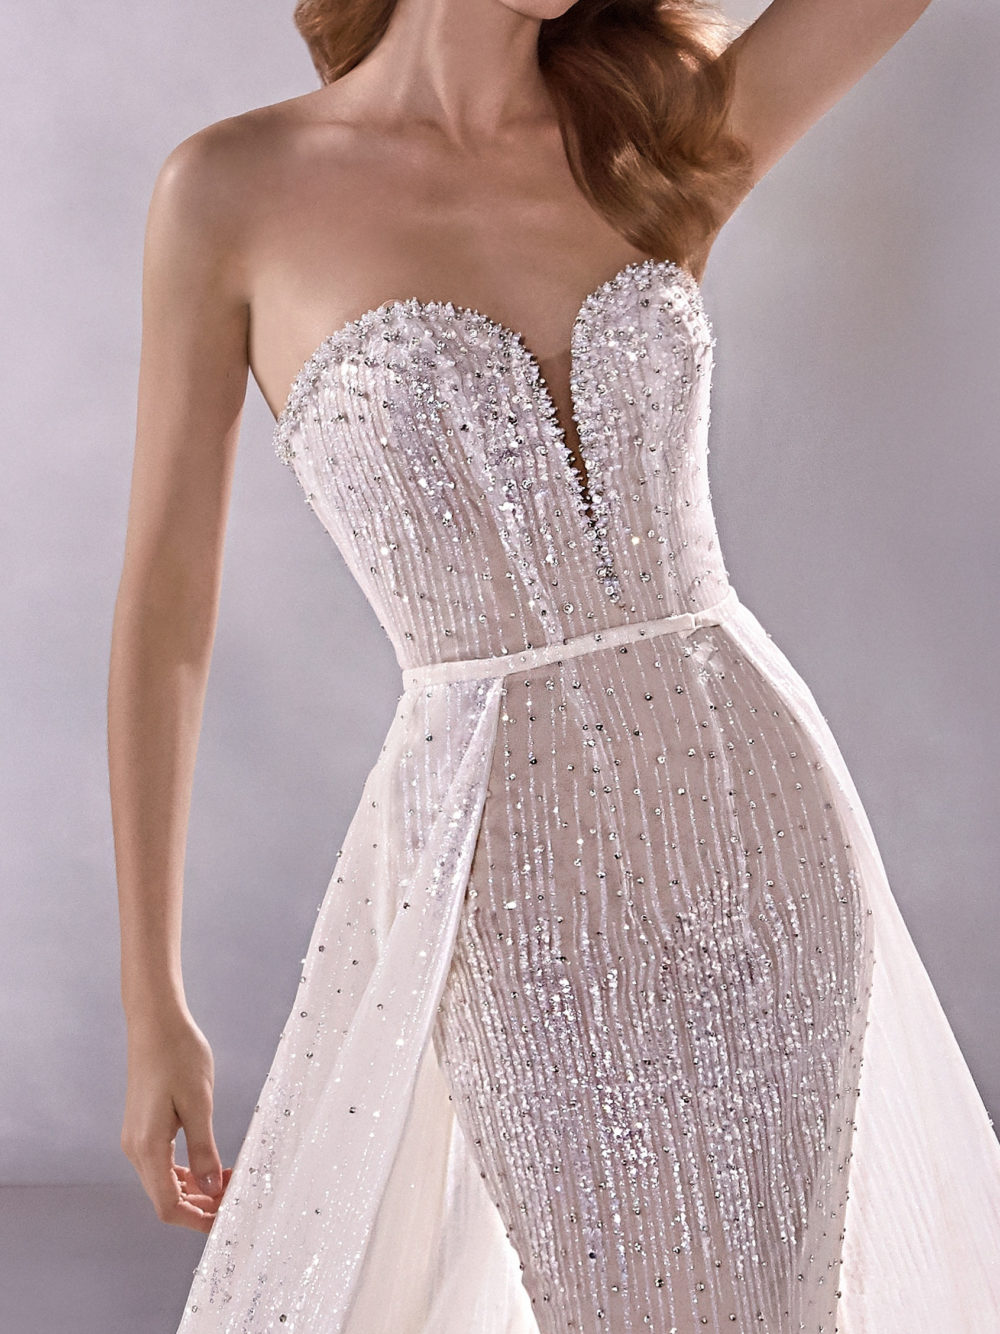 Pronovias Milkyway Wedding Gown Dress 2020 Atelier Collection front detail